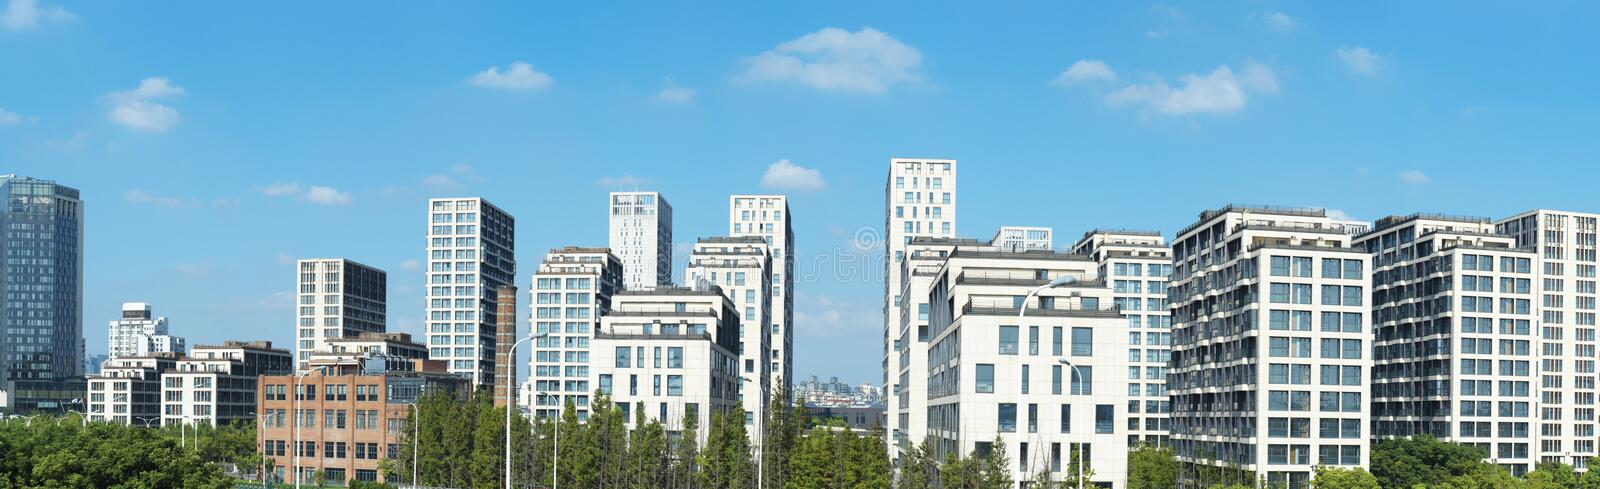 Download Panoramic Image Of Super Residential Buildings Stock Photo - Image: 26197270